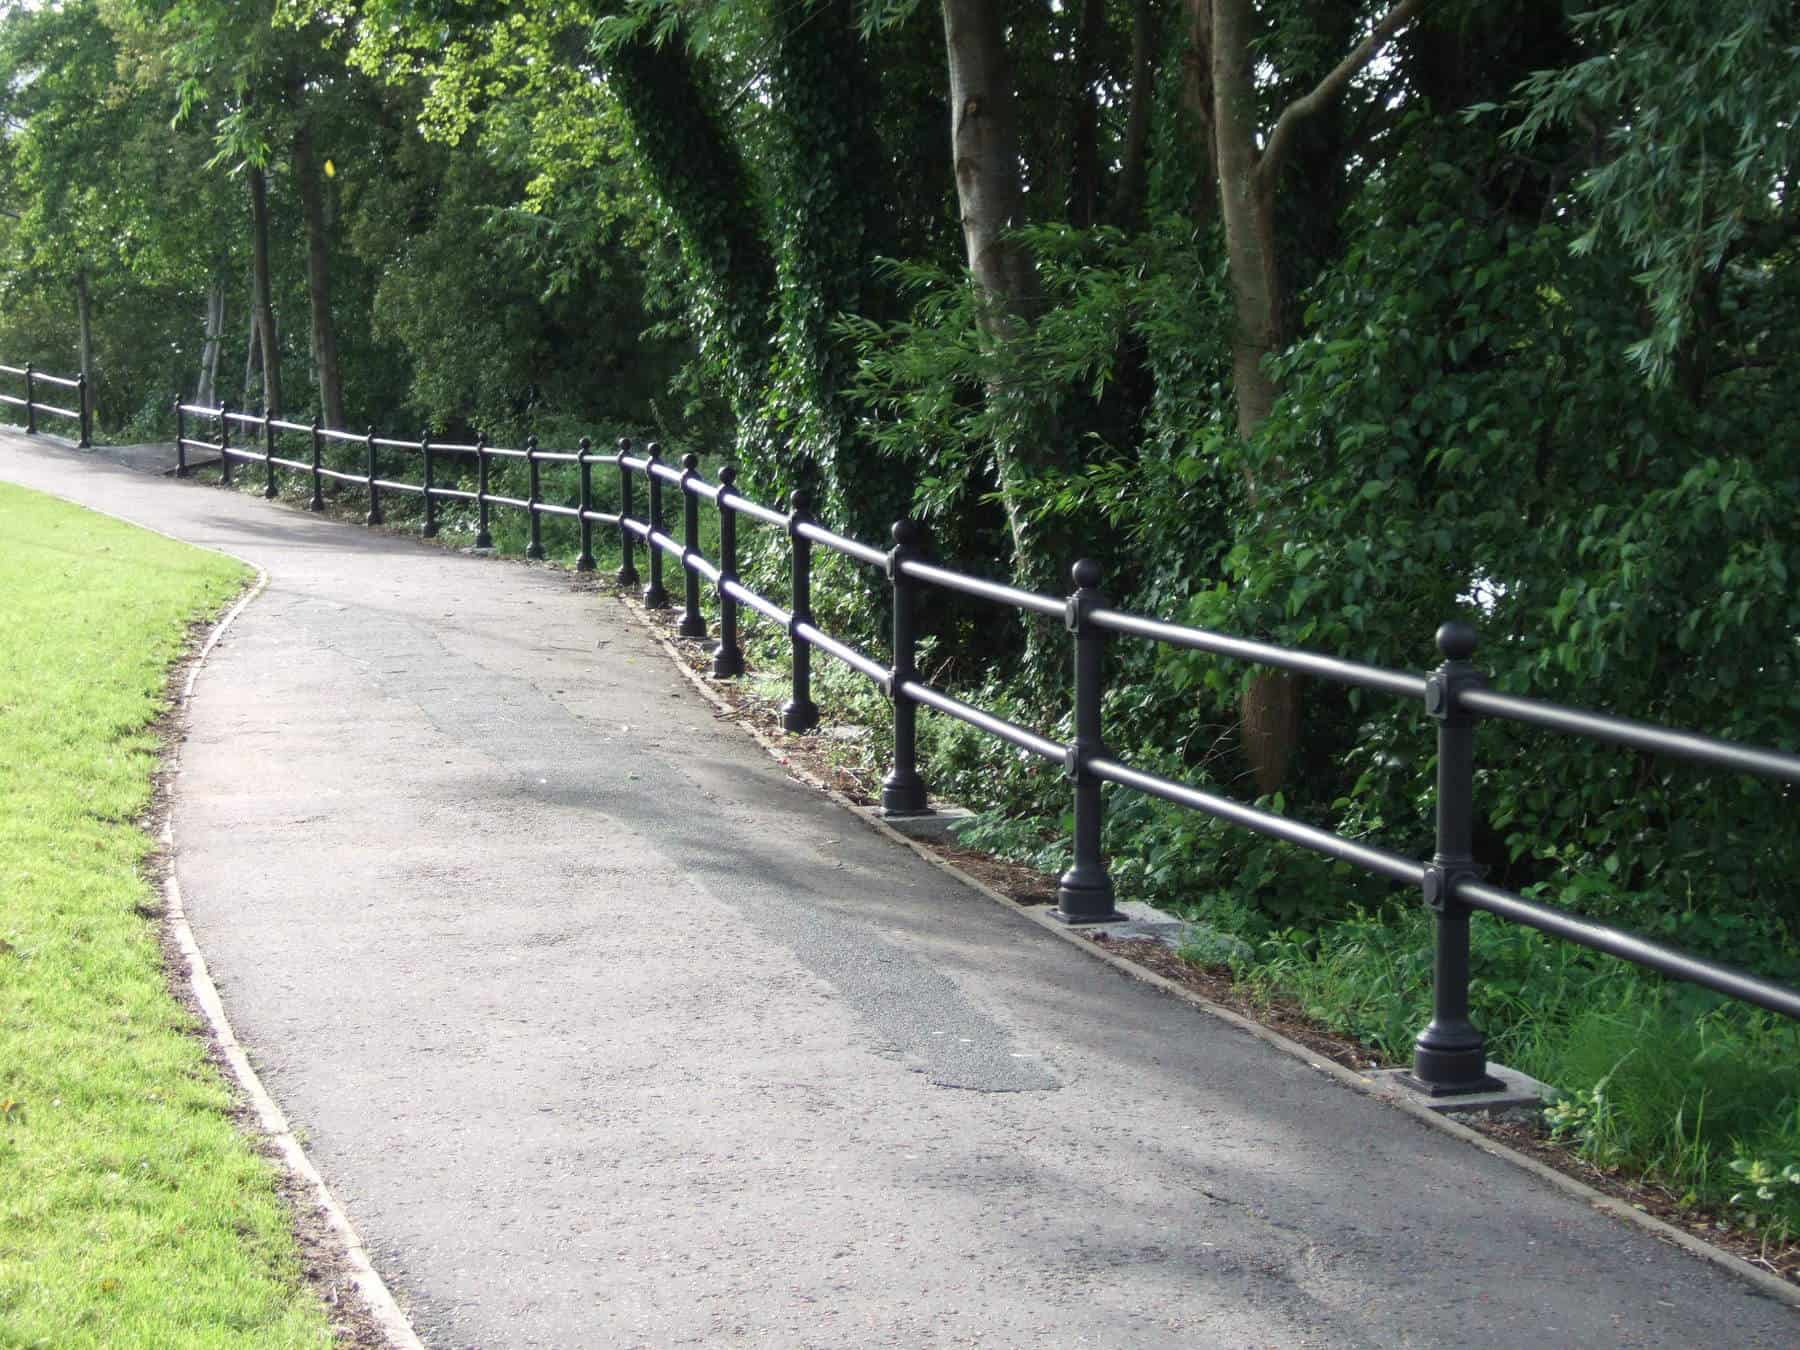 black public railings next to pathway and grass